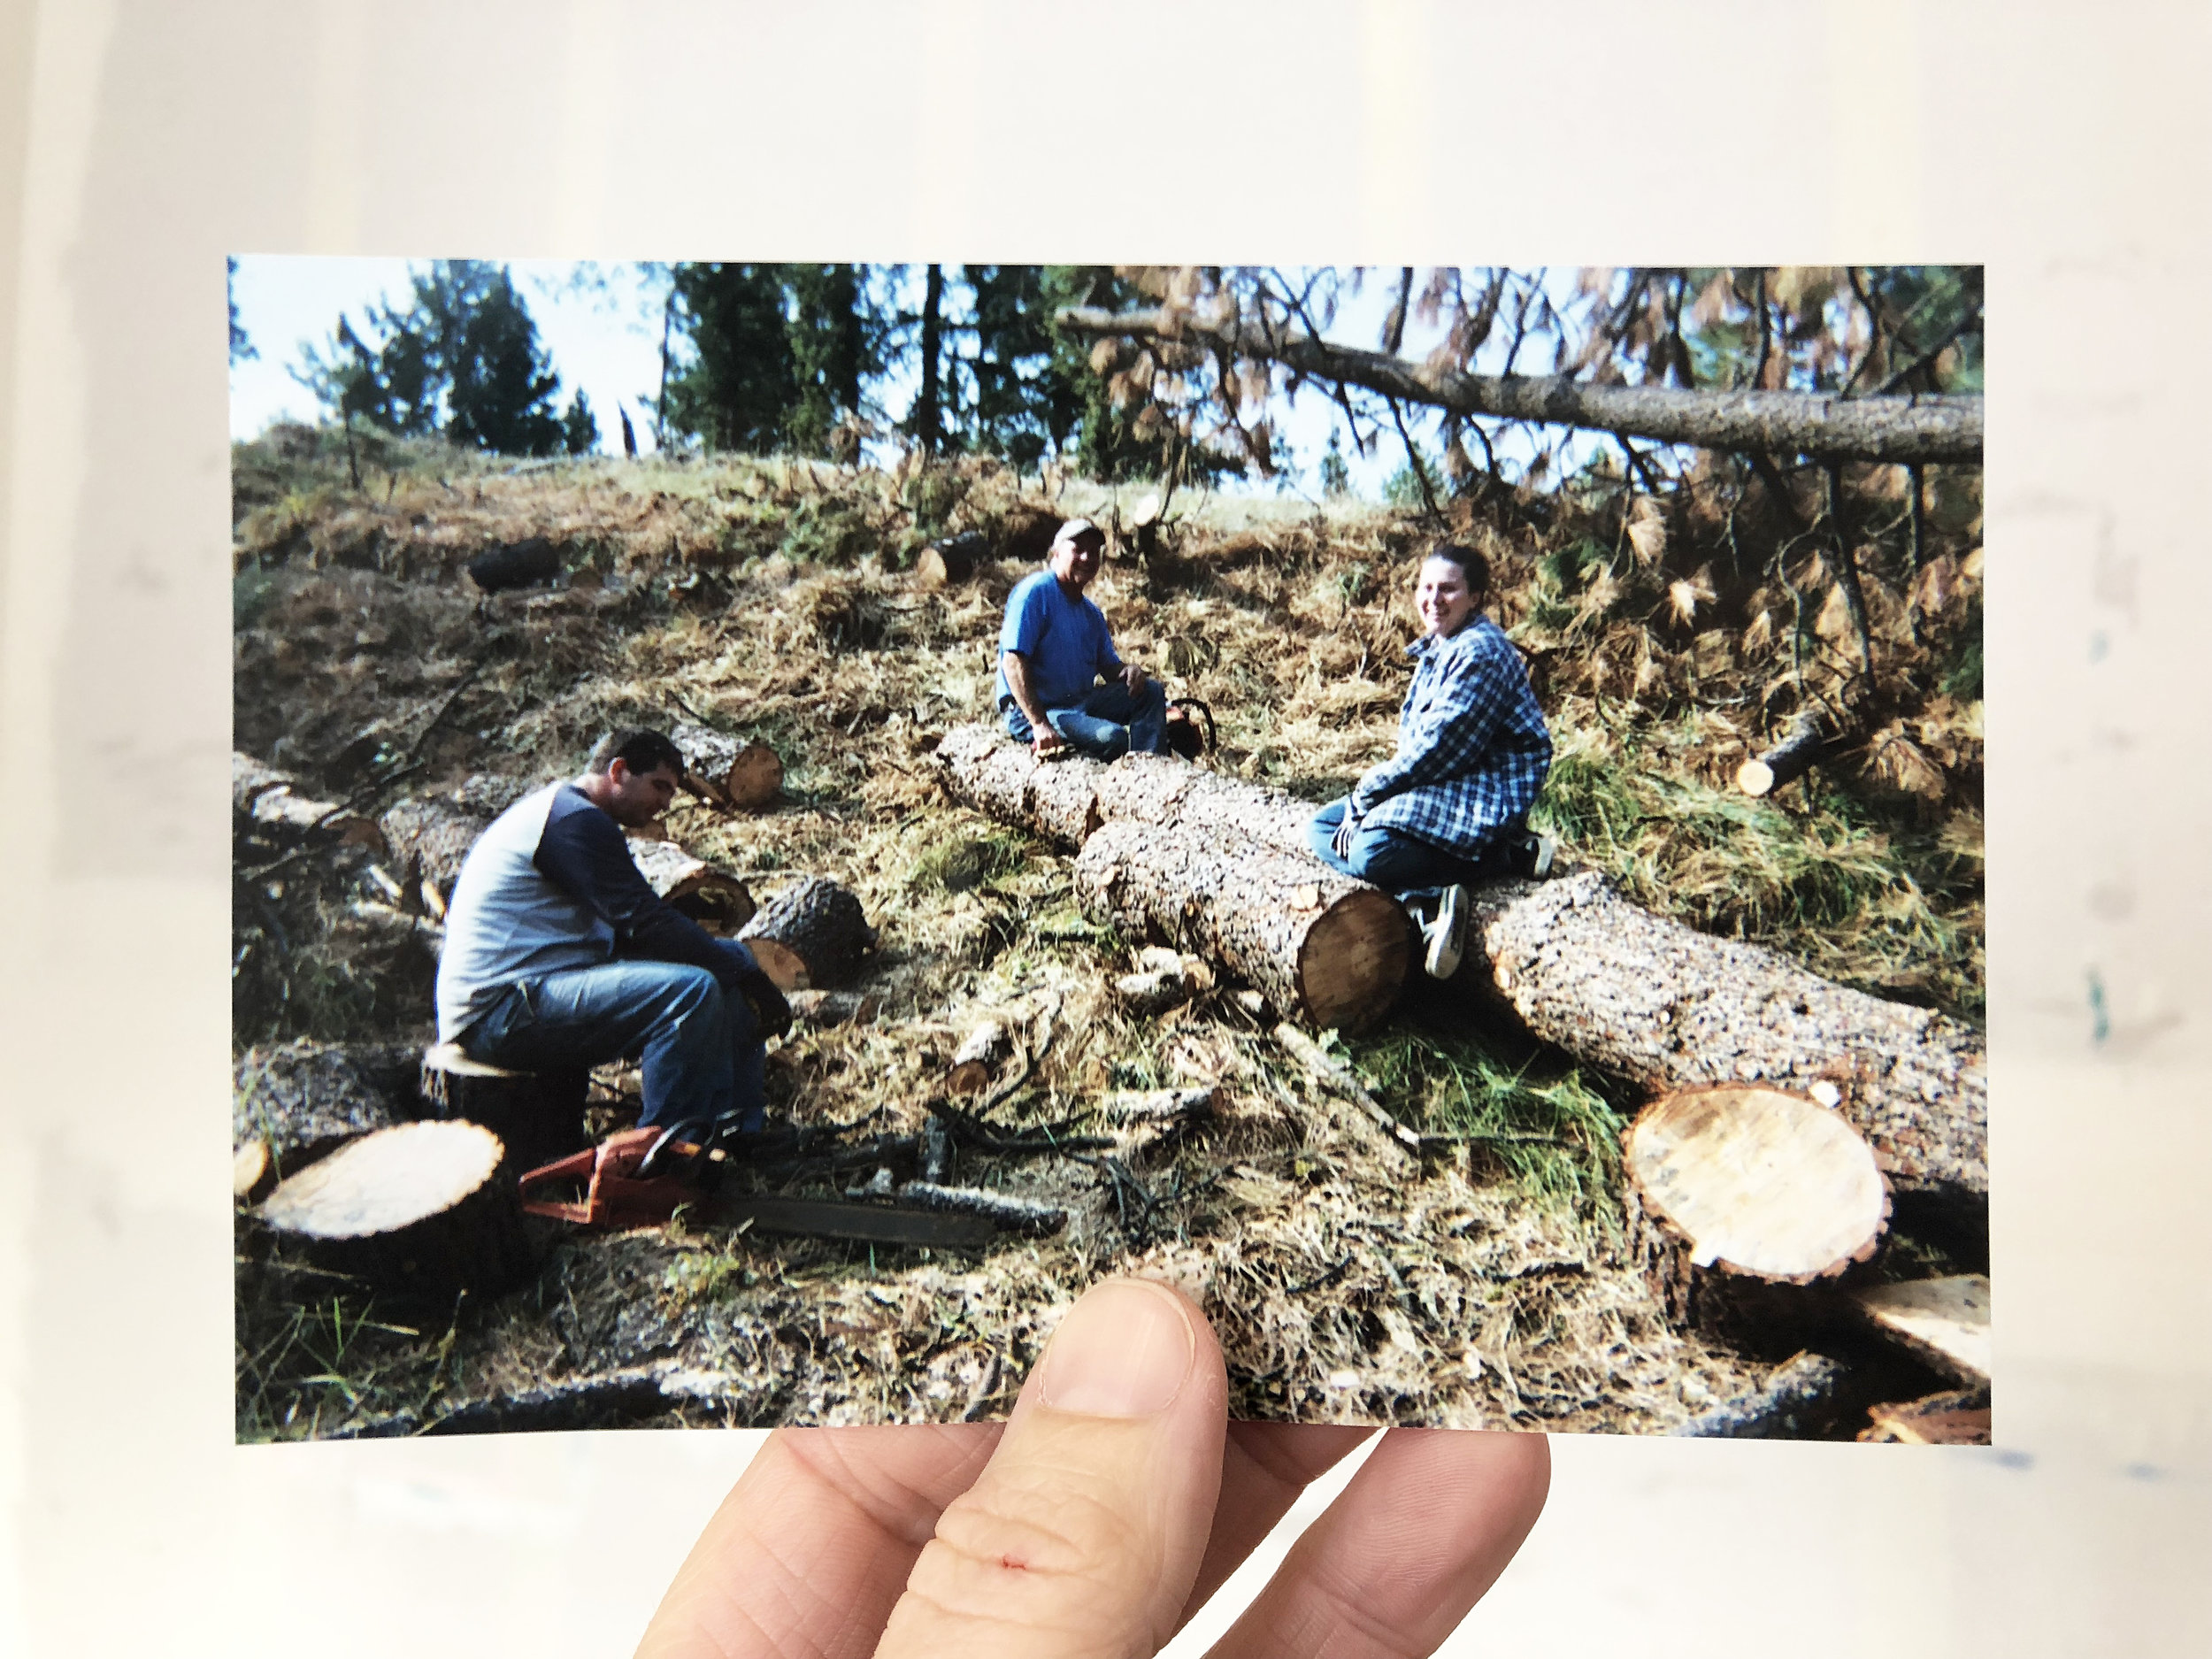 Logging in the Pacific Northwest